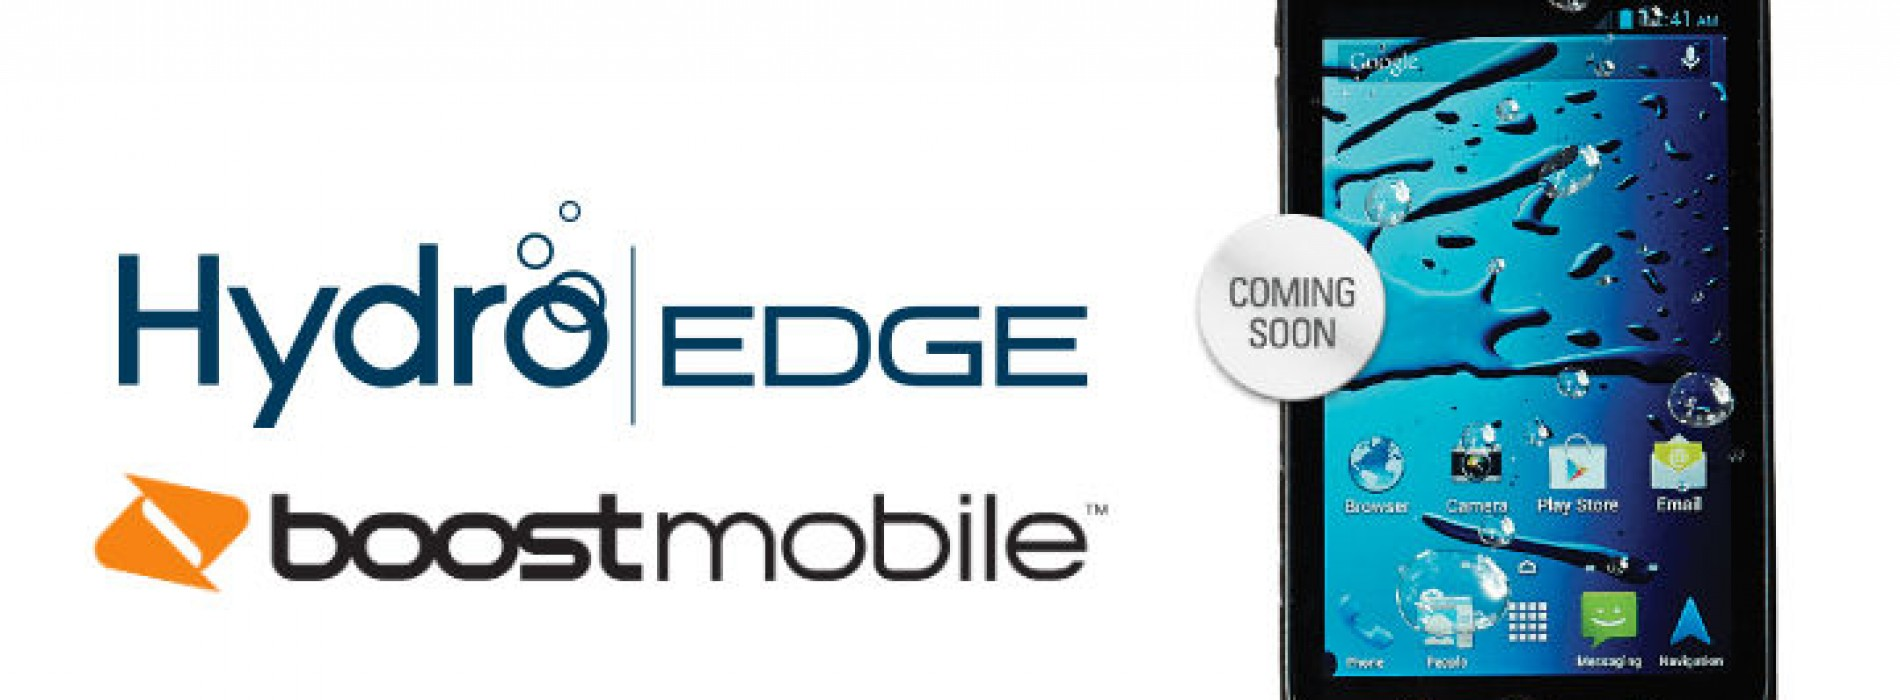 Boost Mobile dials up waterproof Kyocera Hydro EDGE